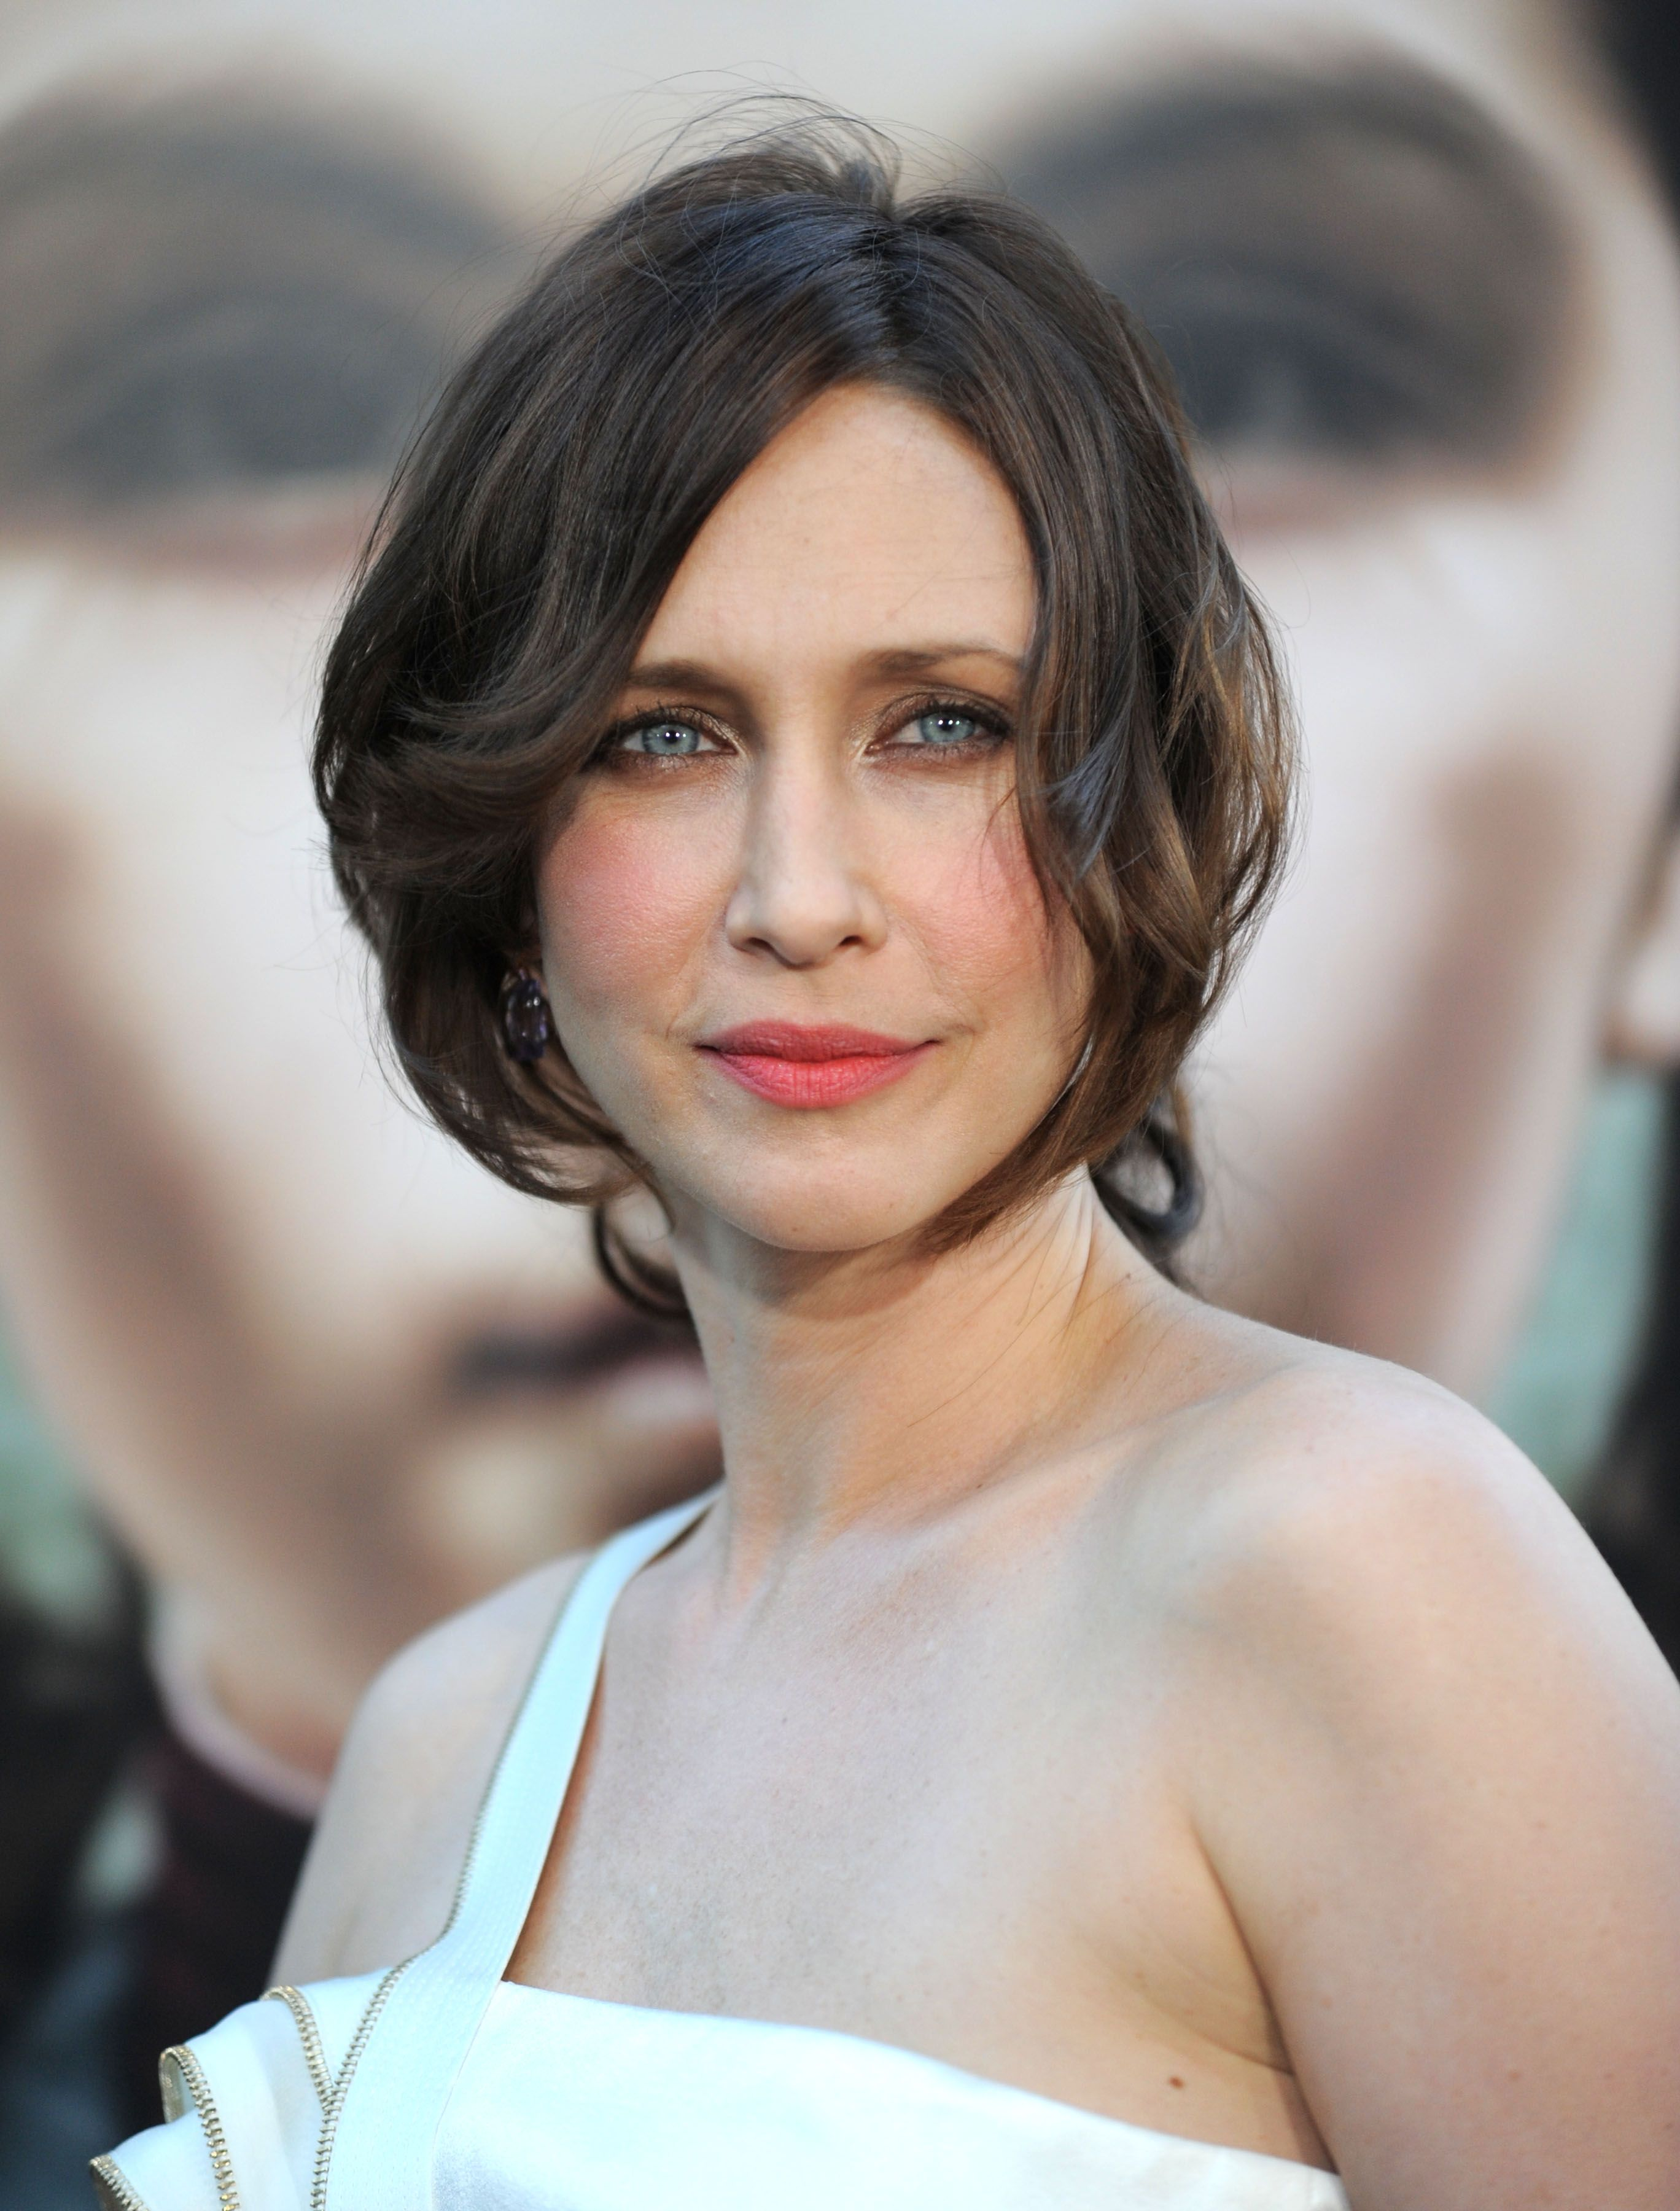 Vera Farmiga Images Free Desktop 8 HD Wallpapers | Just ... Vera Farmiga